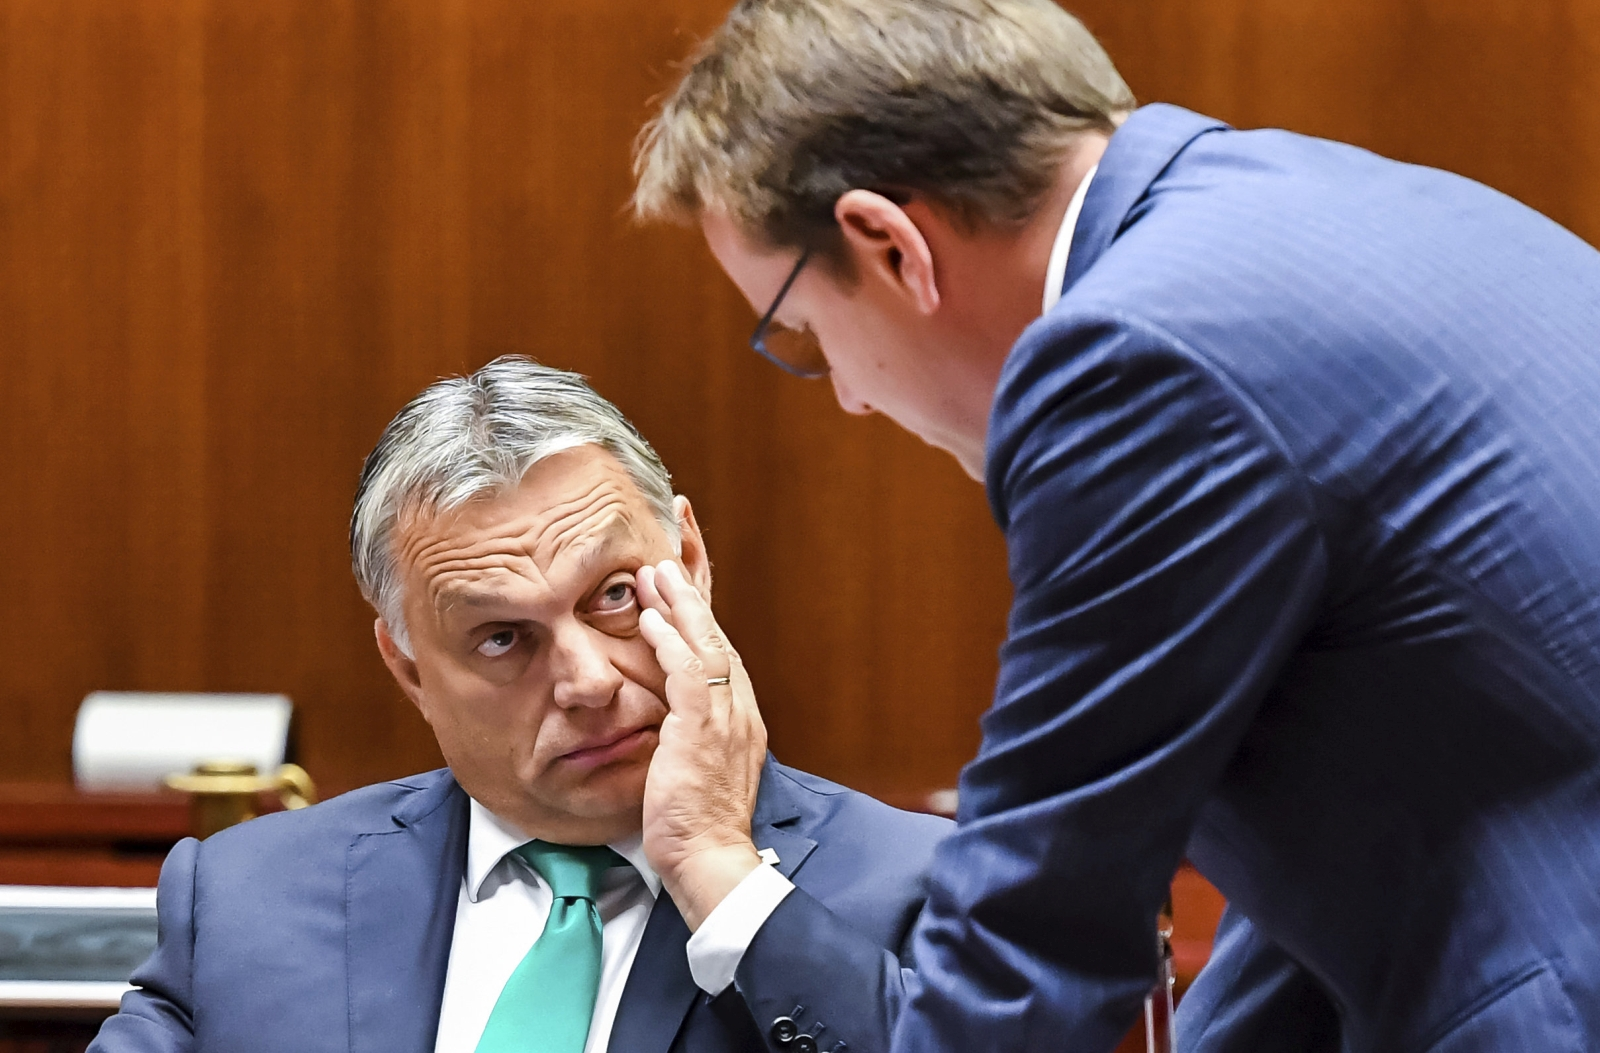 Hungarian Prime Minister Viktor Orban, left, waits for the start of a round table meeting at an EU summit in Brussels on Friday, Oct. 20, 2017. European Union leaders gathered Friday to weigh progress in negotiations on Britain's departure from their club as they look for new ways to speed up the painfully slow moving process. (AP Photo/Geert Vanden Wijngaert)